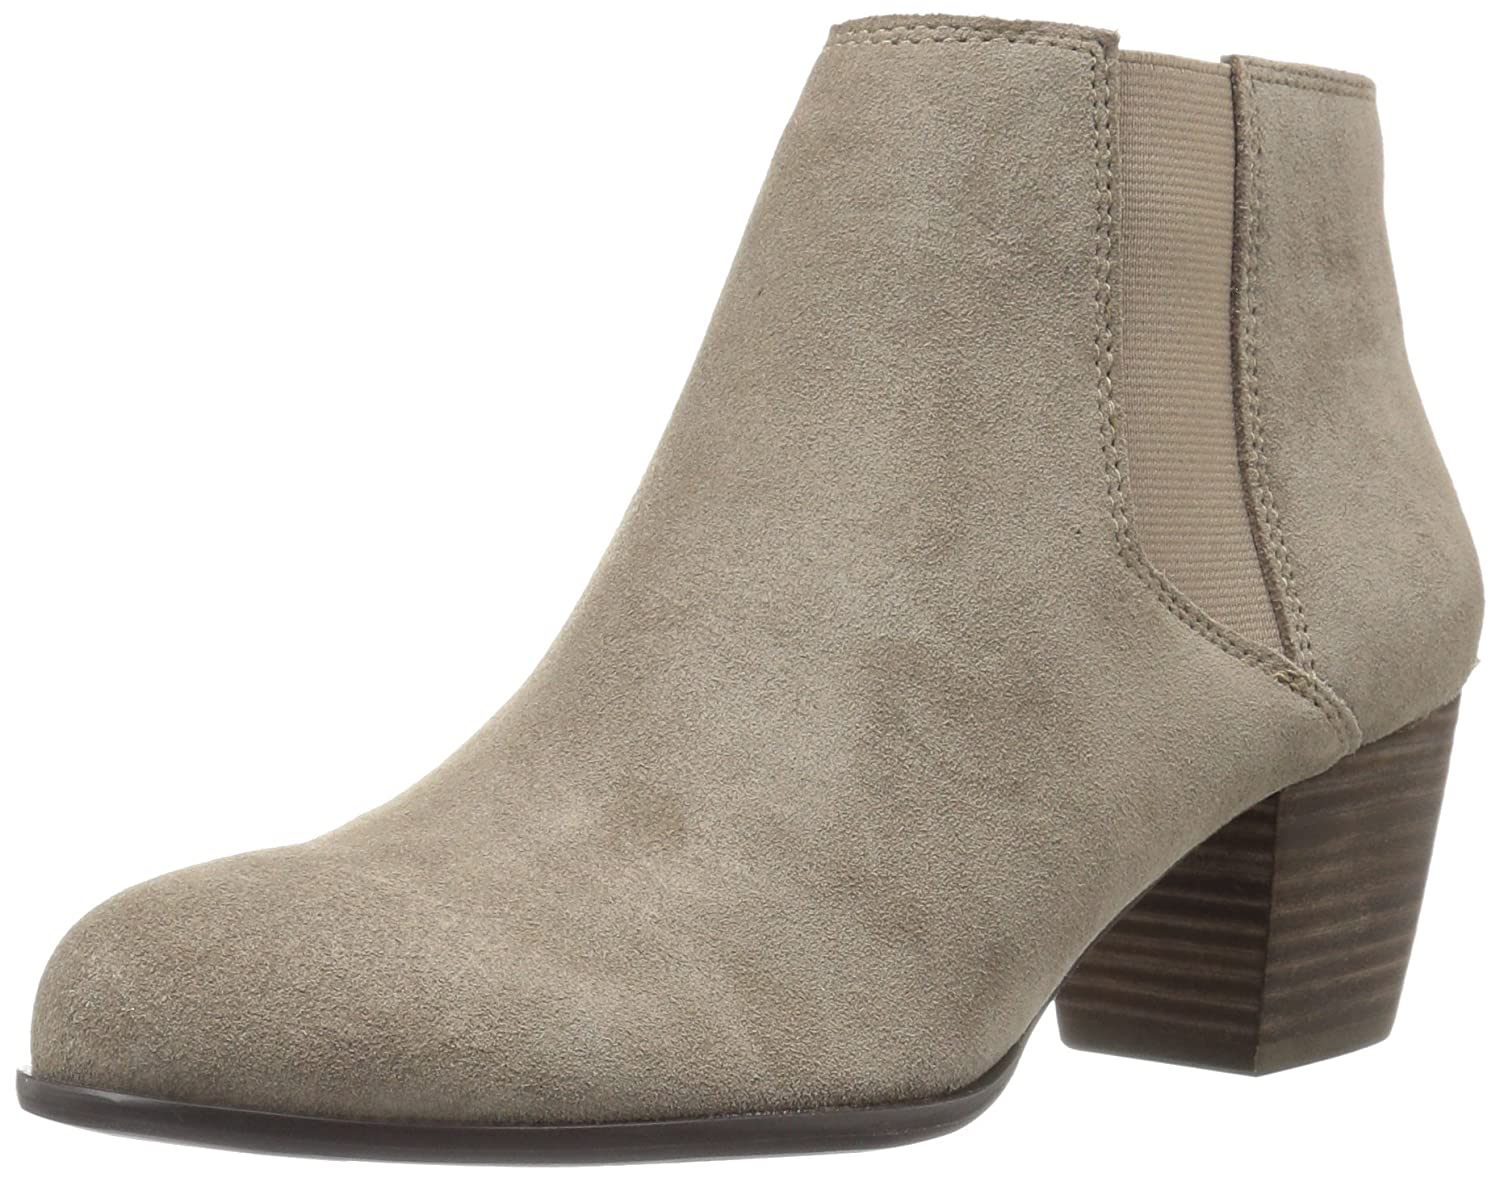 Lucky Brand Women's Tulayne Ankle Bootie B01EIL2WWA 6.5 B(M) US|Brindle